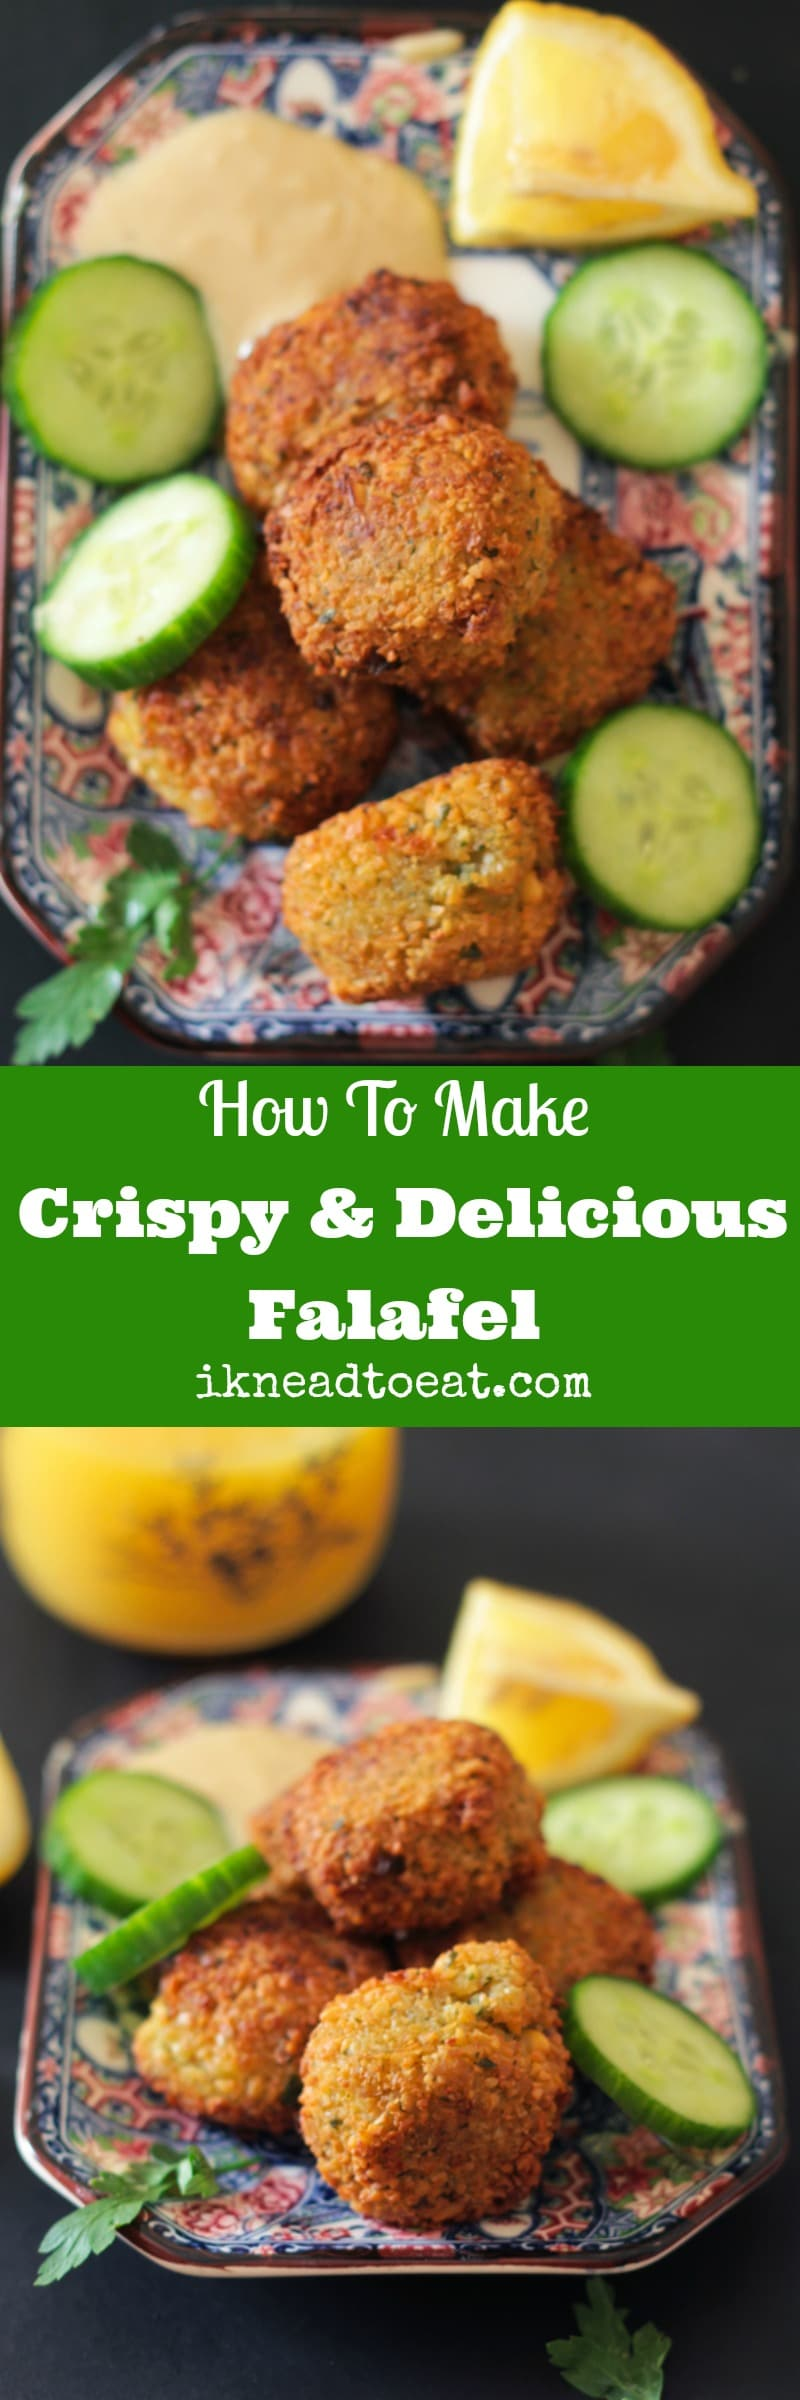 How to Make Crispy & Delicious Falafel